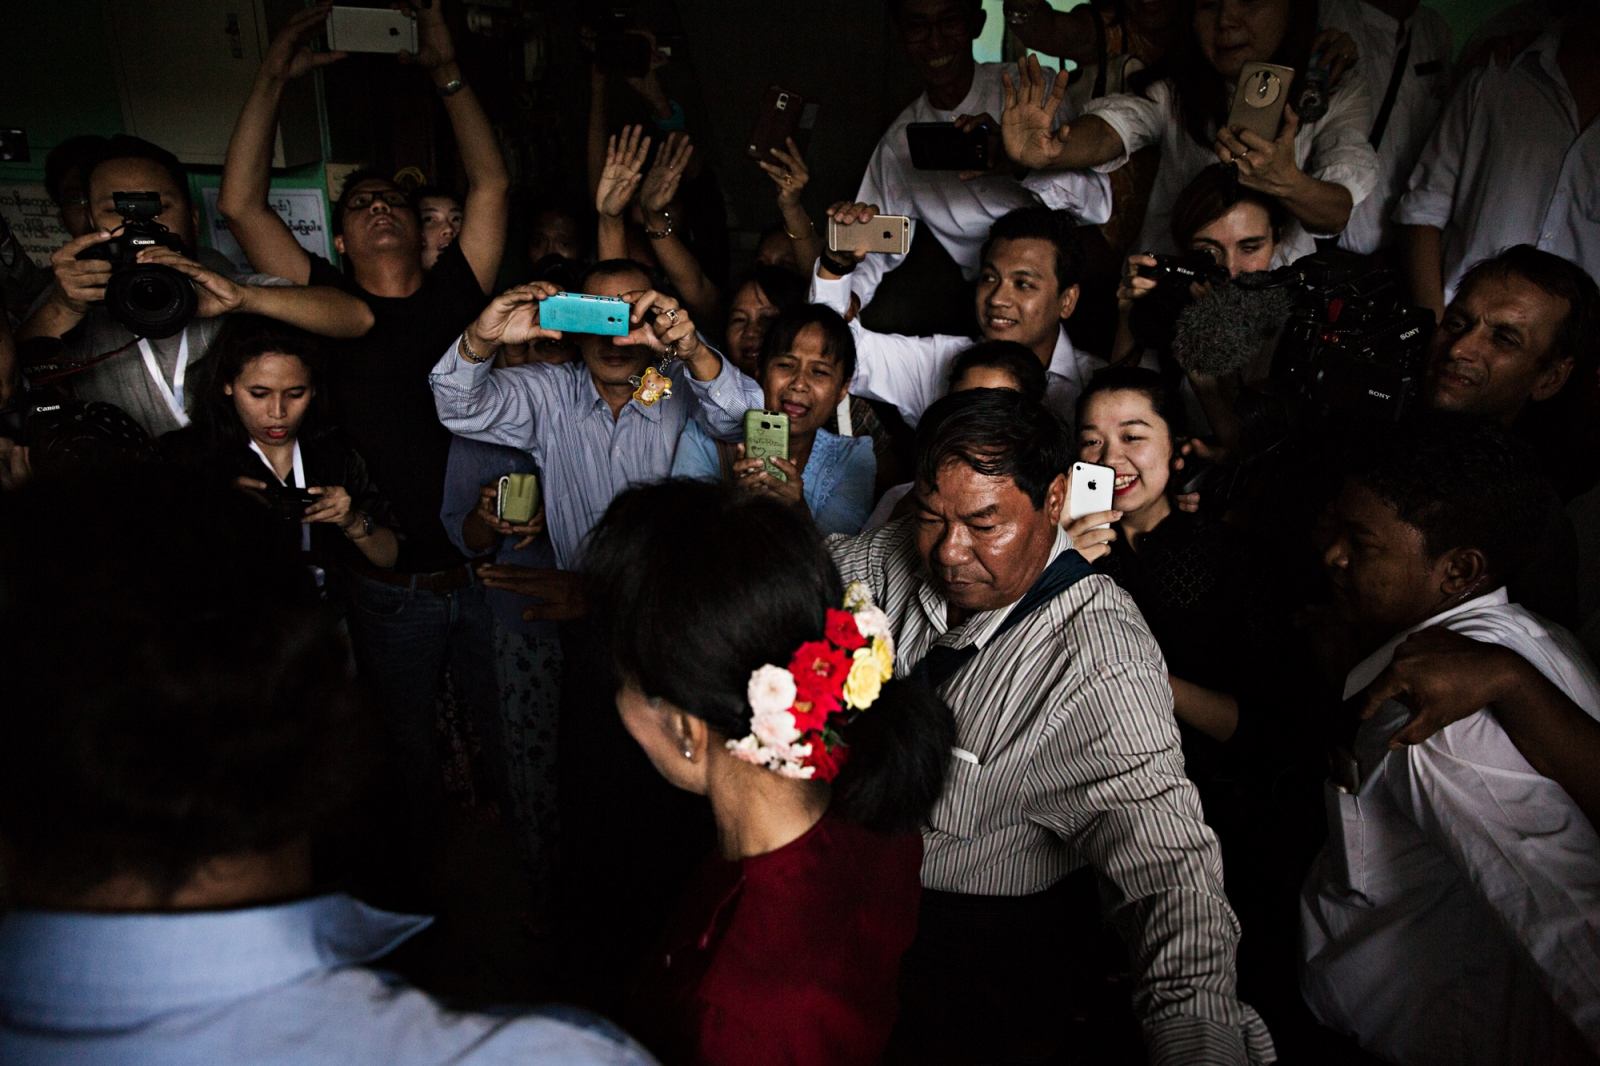 Aung San Suu Kyi makes her way back through the crowd in Yangon after voting during Myanmar's historic election in 2015.